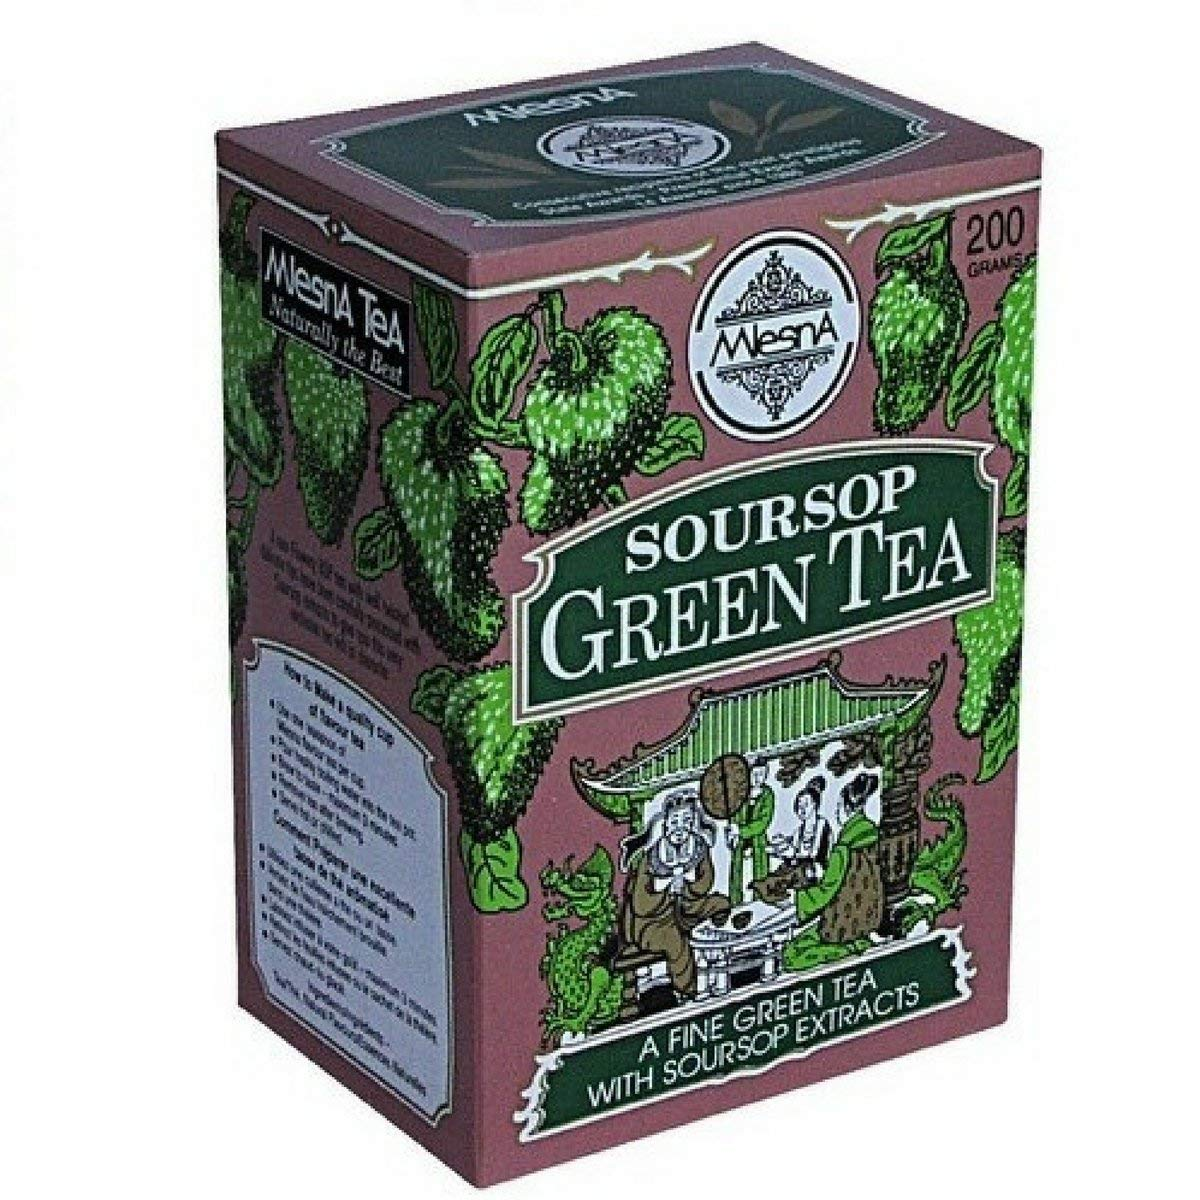 Mlesna Graviola Soursop Green Tea - Pure Ceylon Sri Lanka Fine Green Tea with Soursop Graviola Guanabana Extract - Loose Leaf Tea and Tea Bags - (Loose Tea (7 oz))